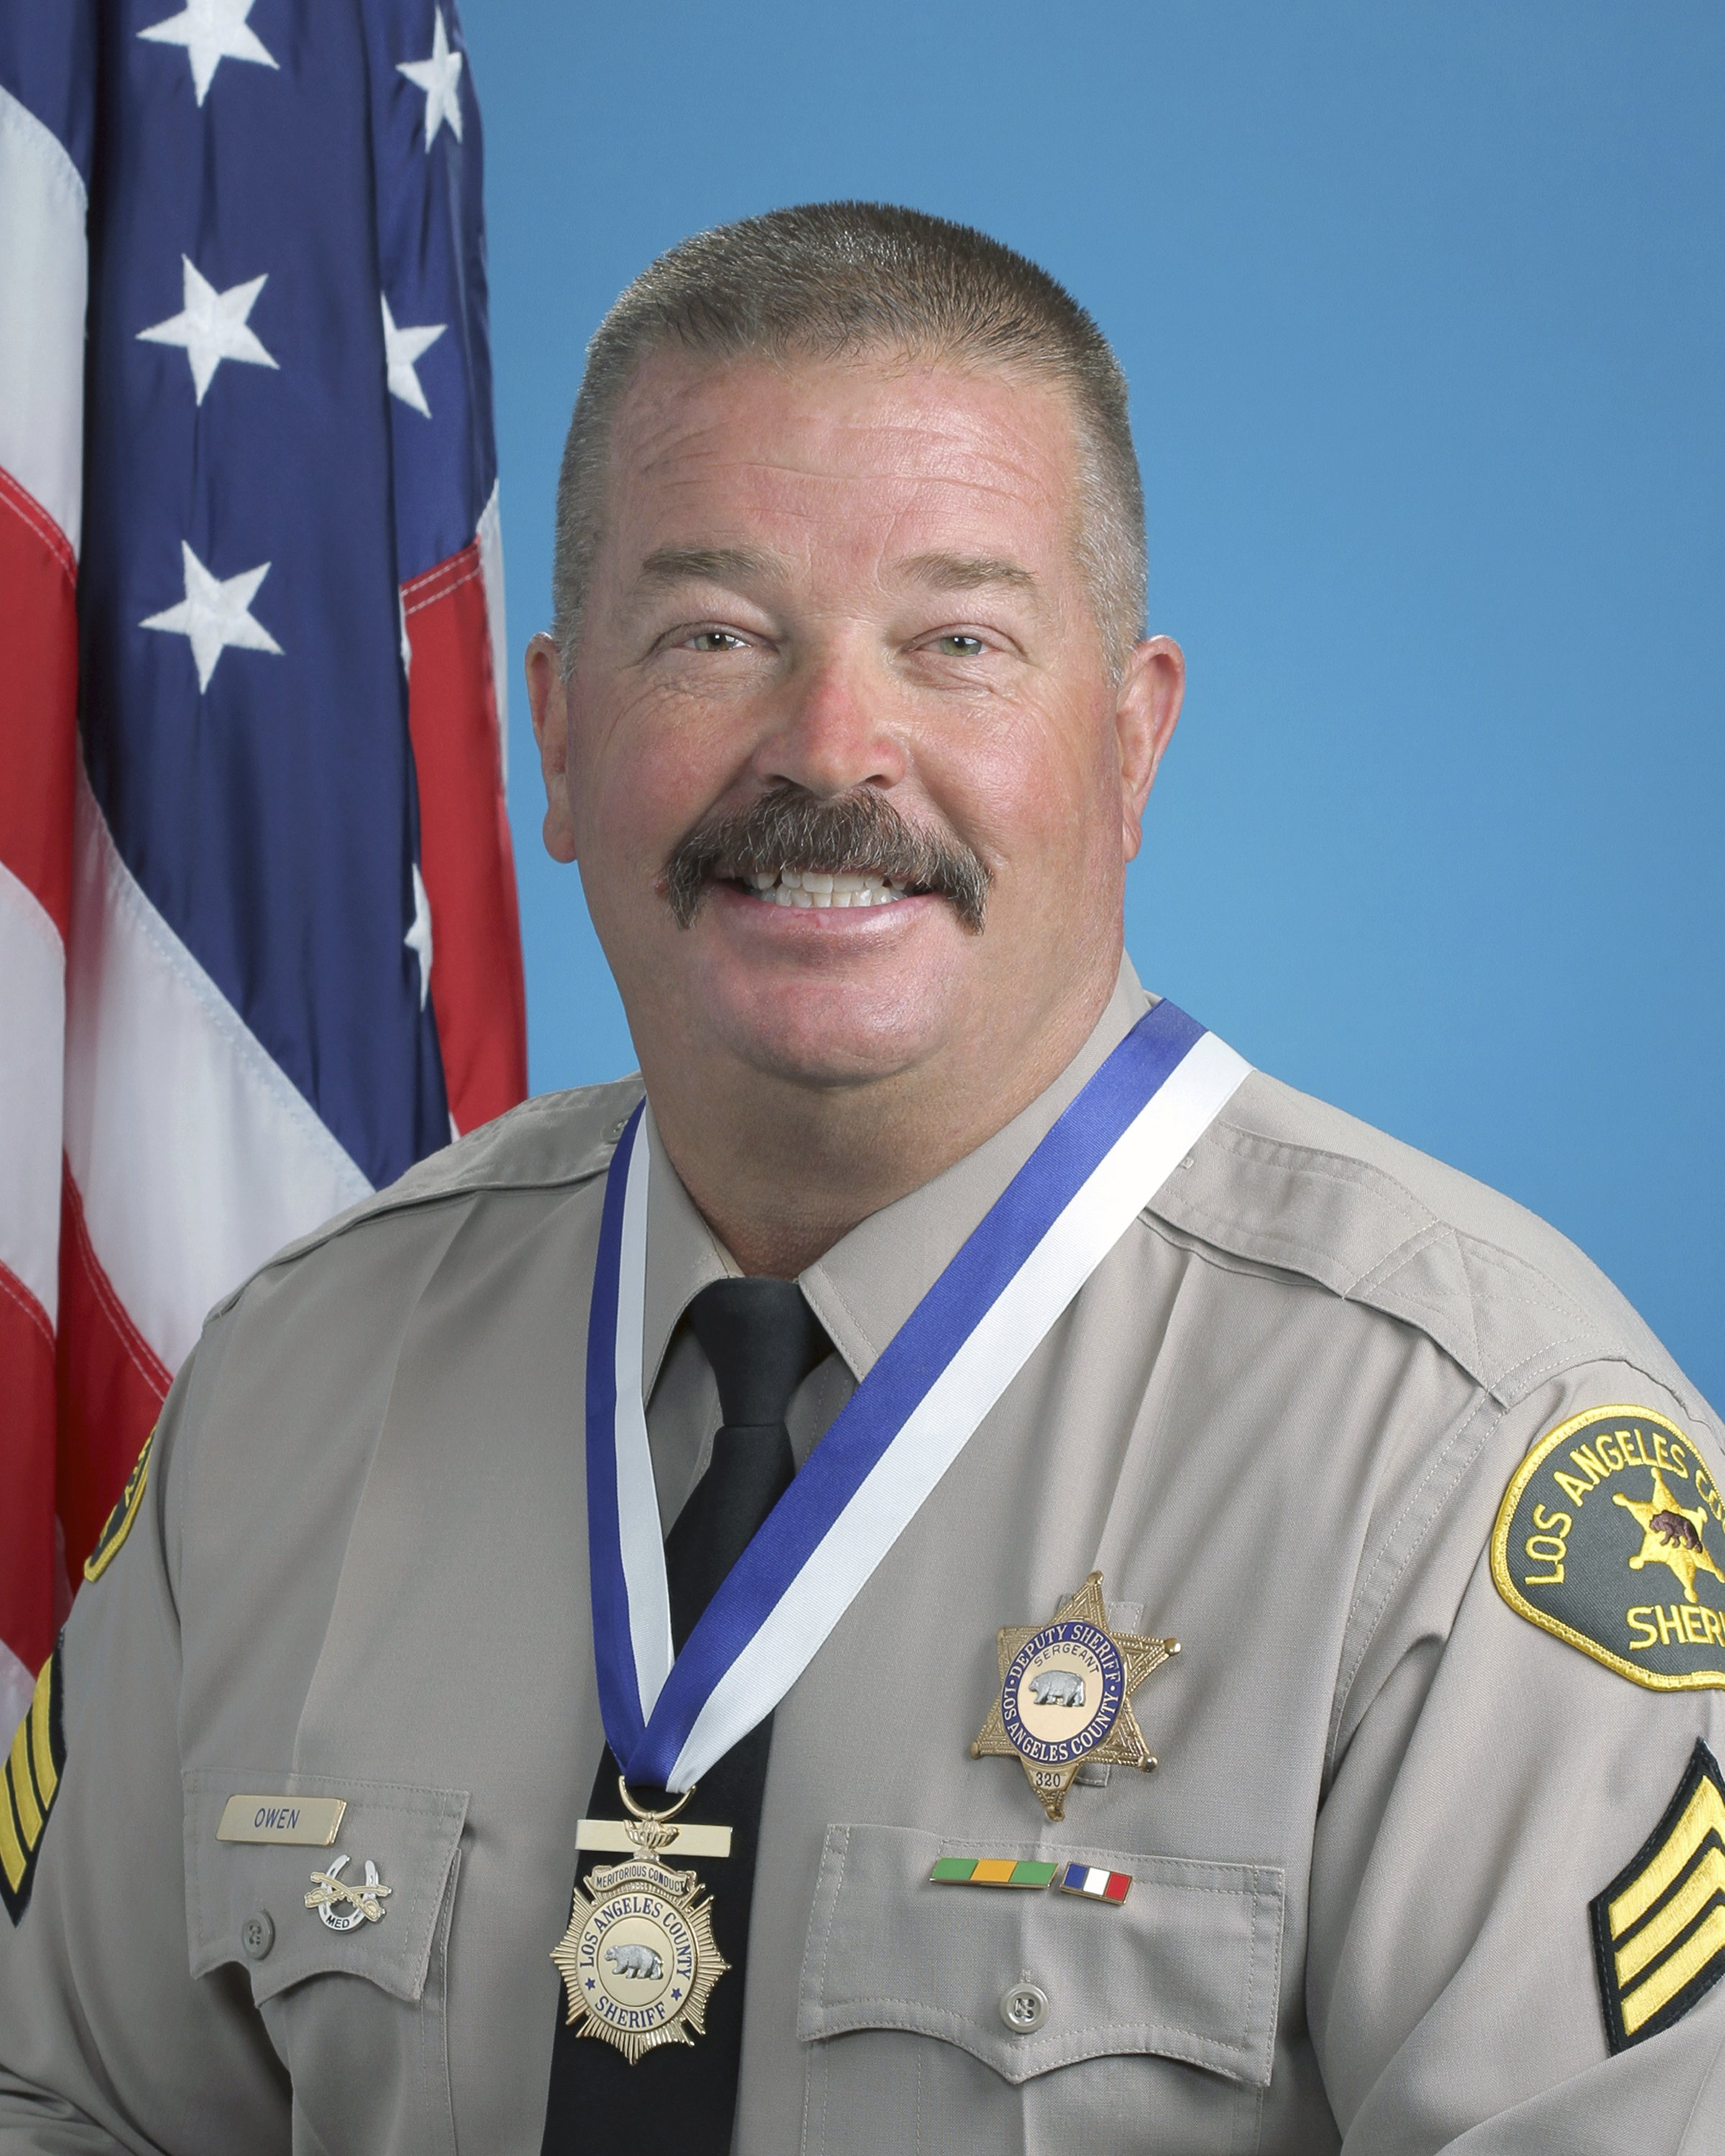 Parolee charged in slaying of Los Angeles County sergeant